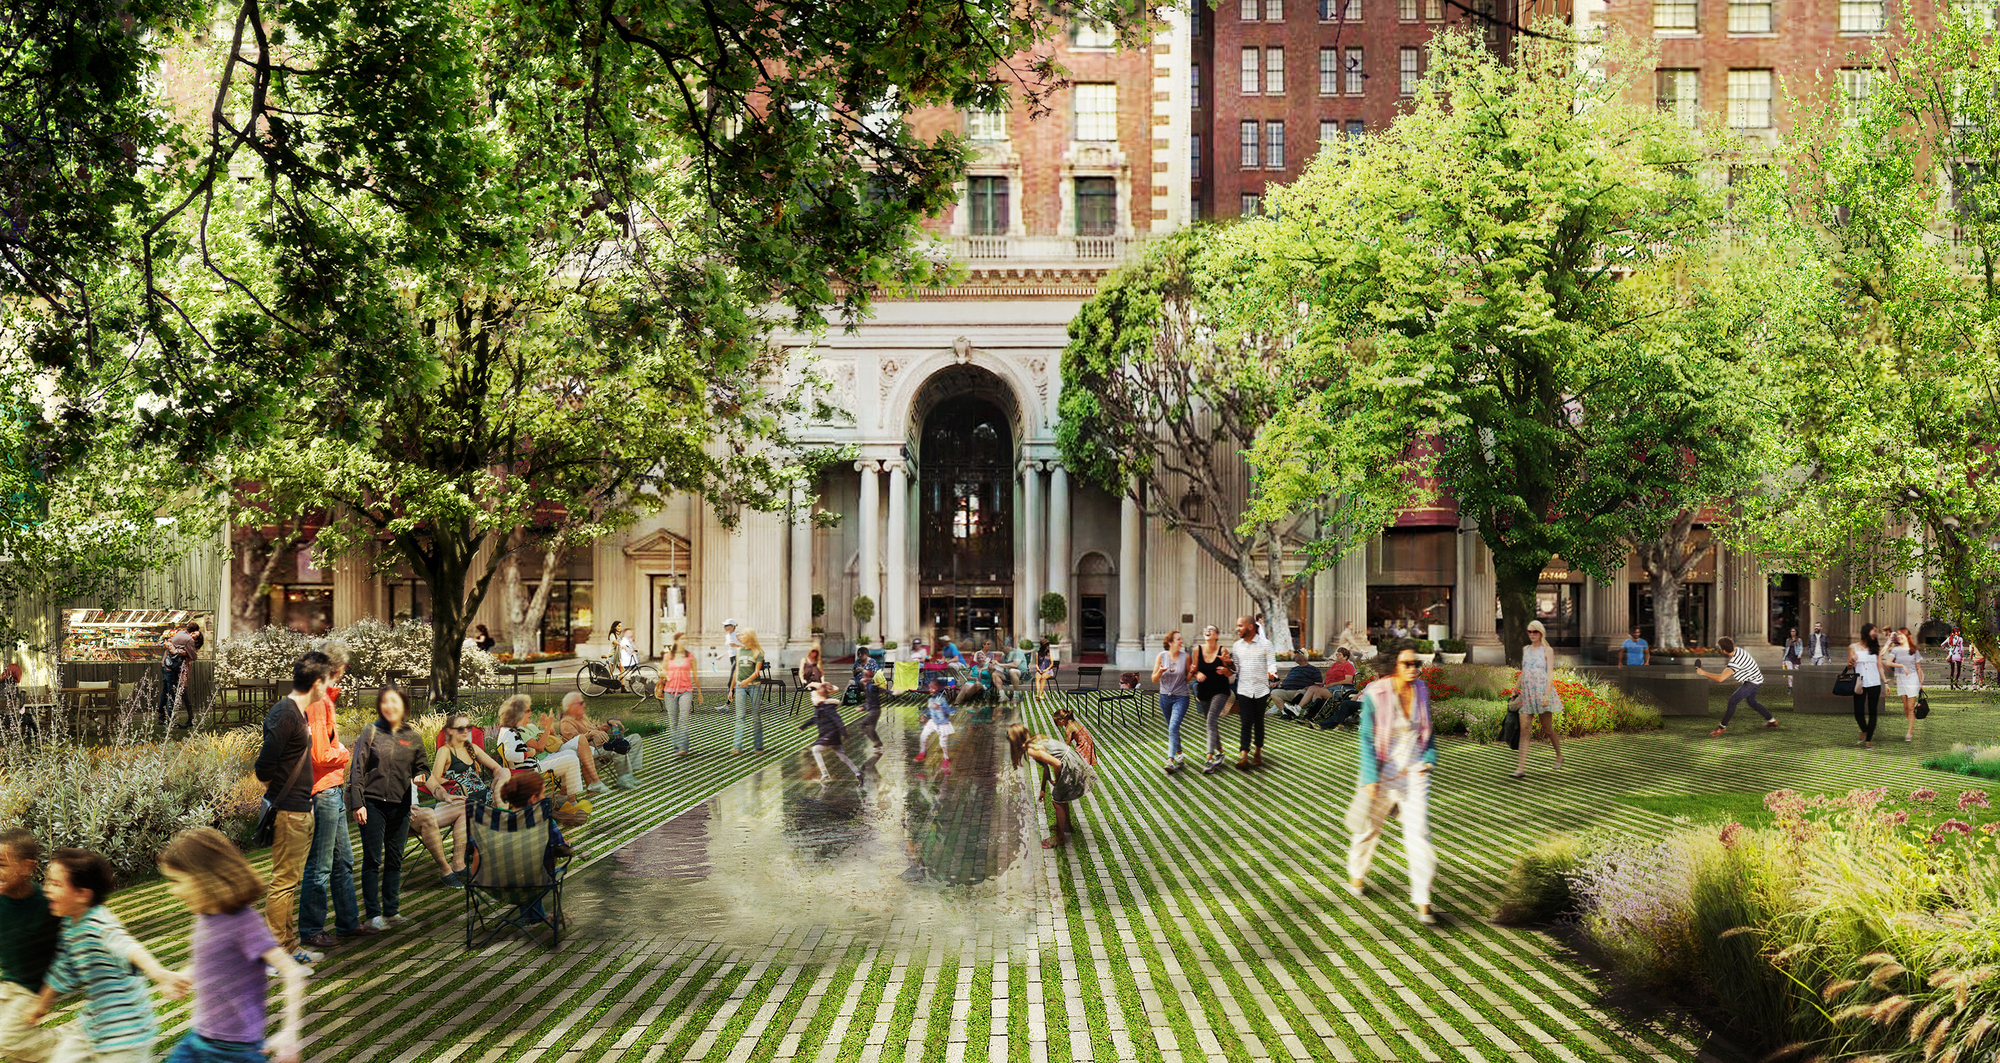 agence ter selected to redesign la s pershing square with proposal